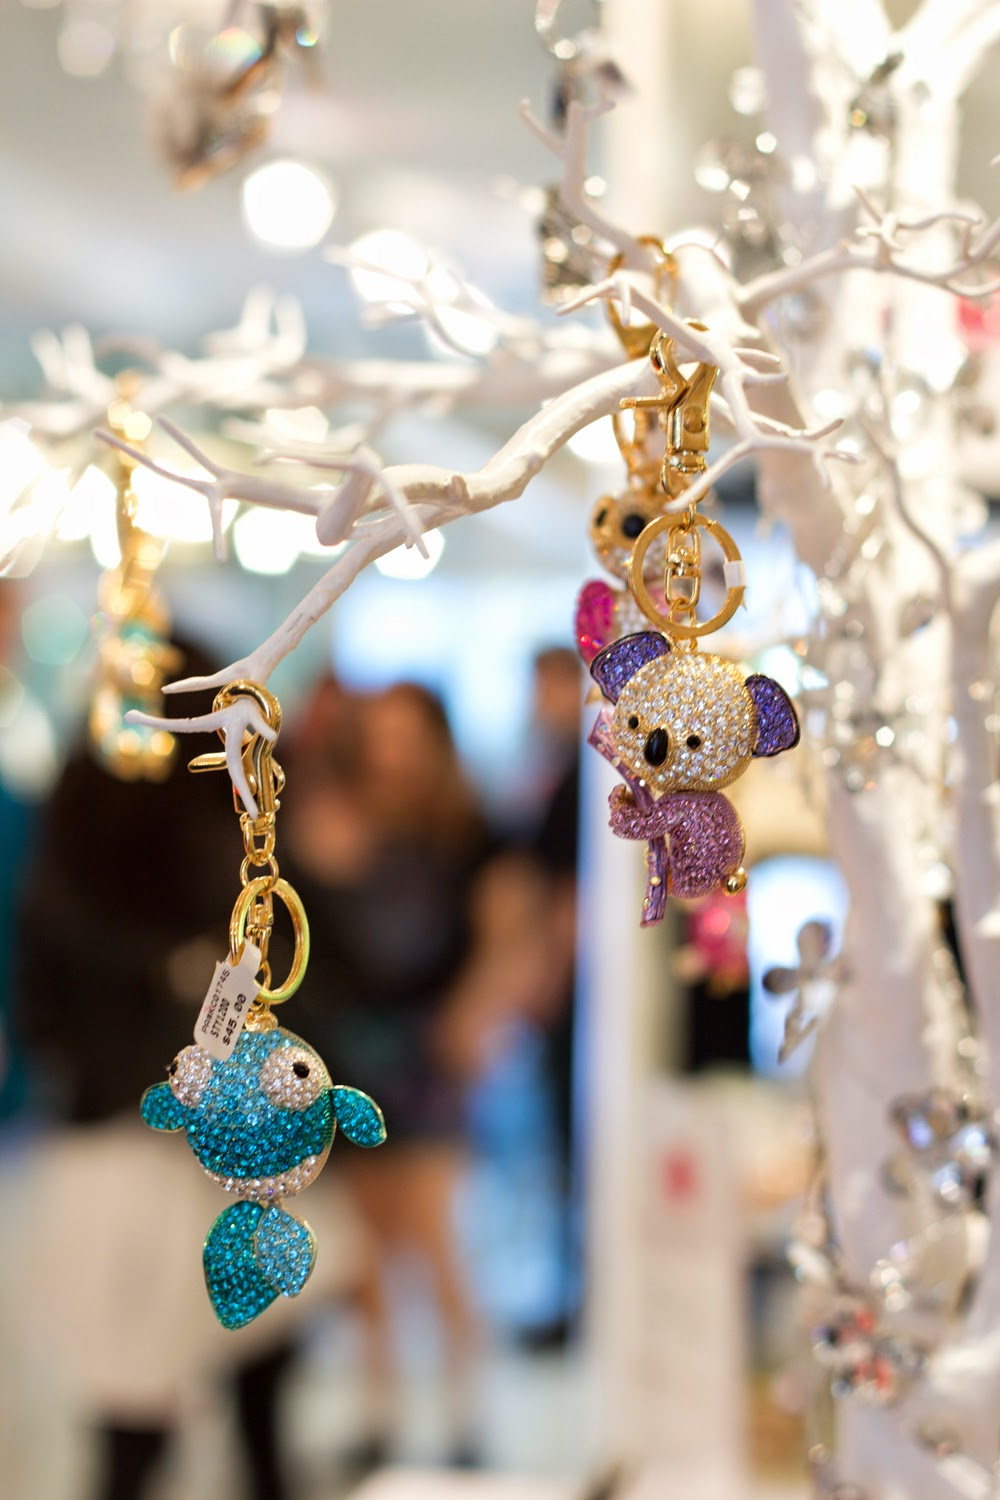 artemis-pop-up-jewellery-store-in-yorkville, cute-animals-key-chain